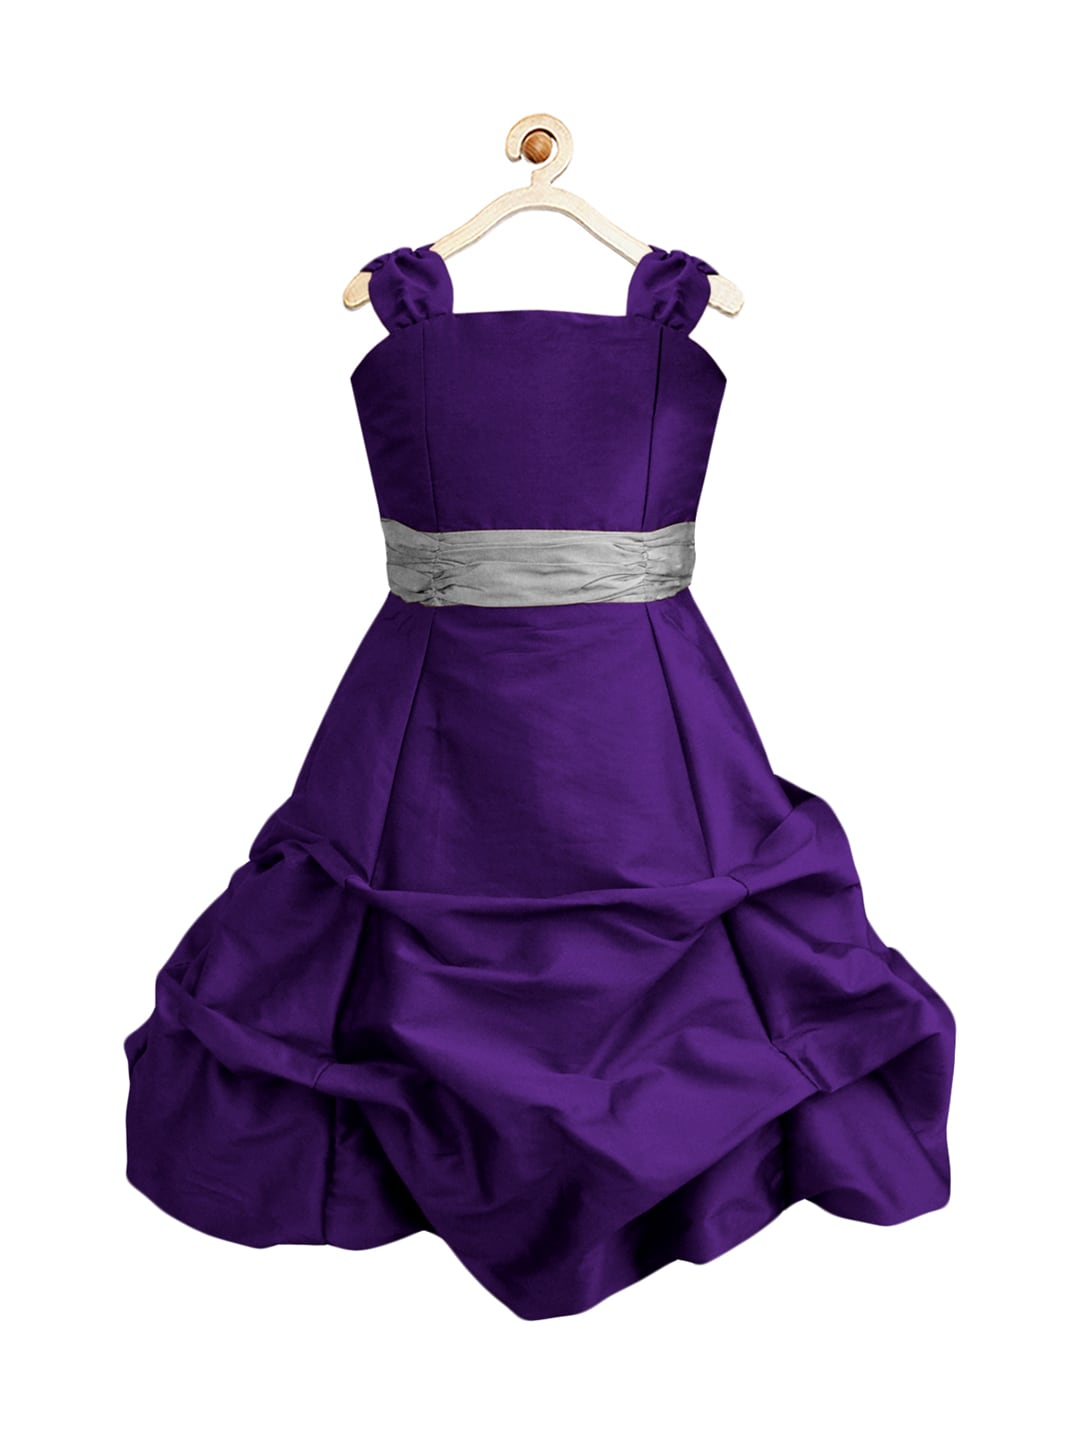 4f9a386480e06 Girls Dresses - Buy Frocks   Gowns for Girls Online